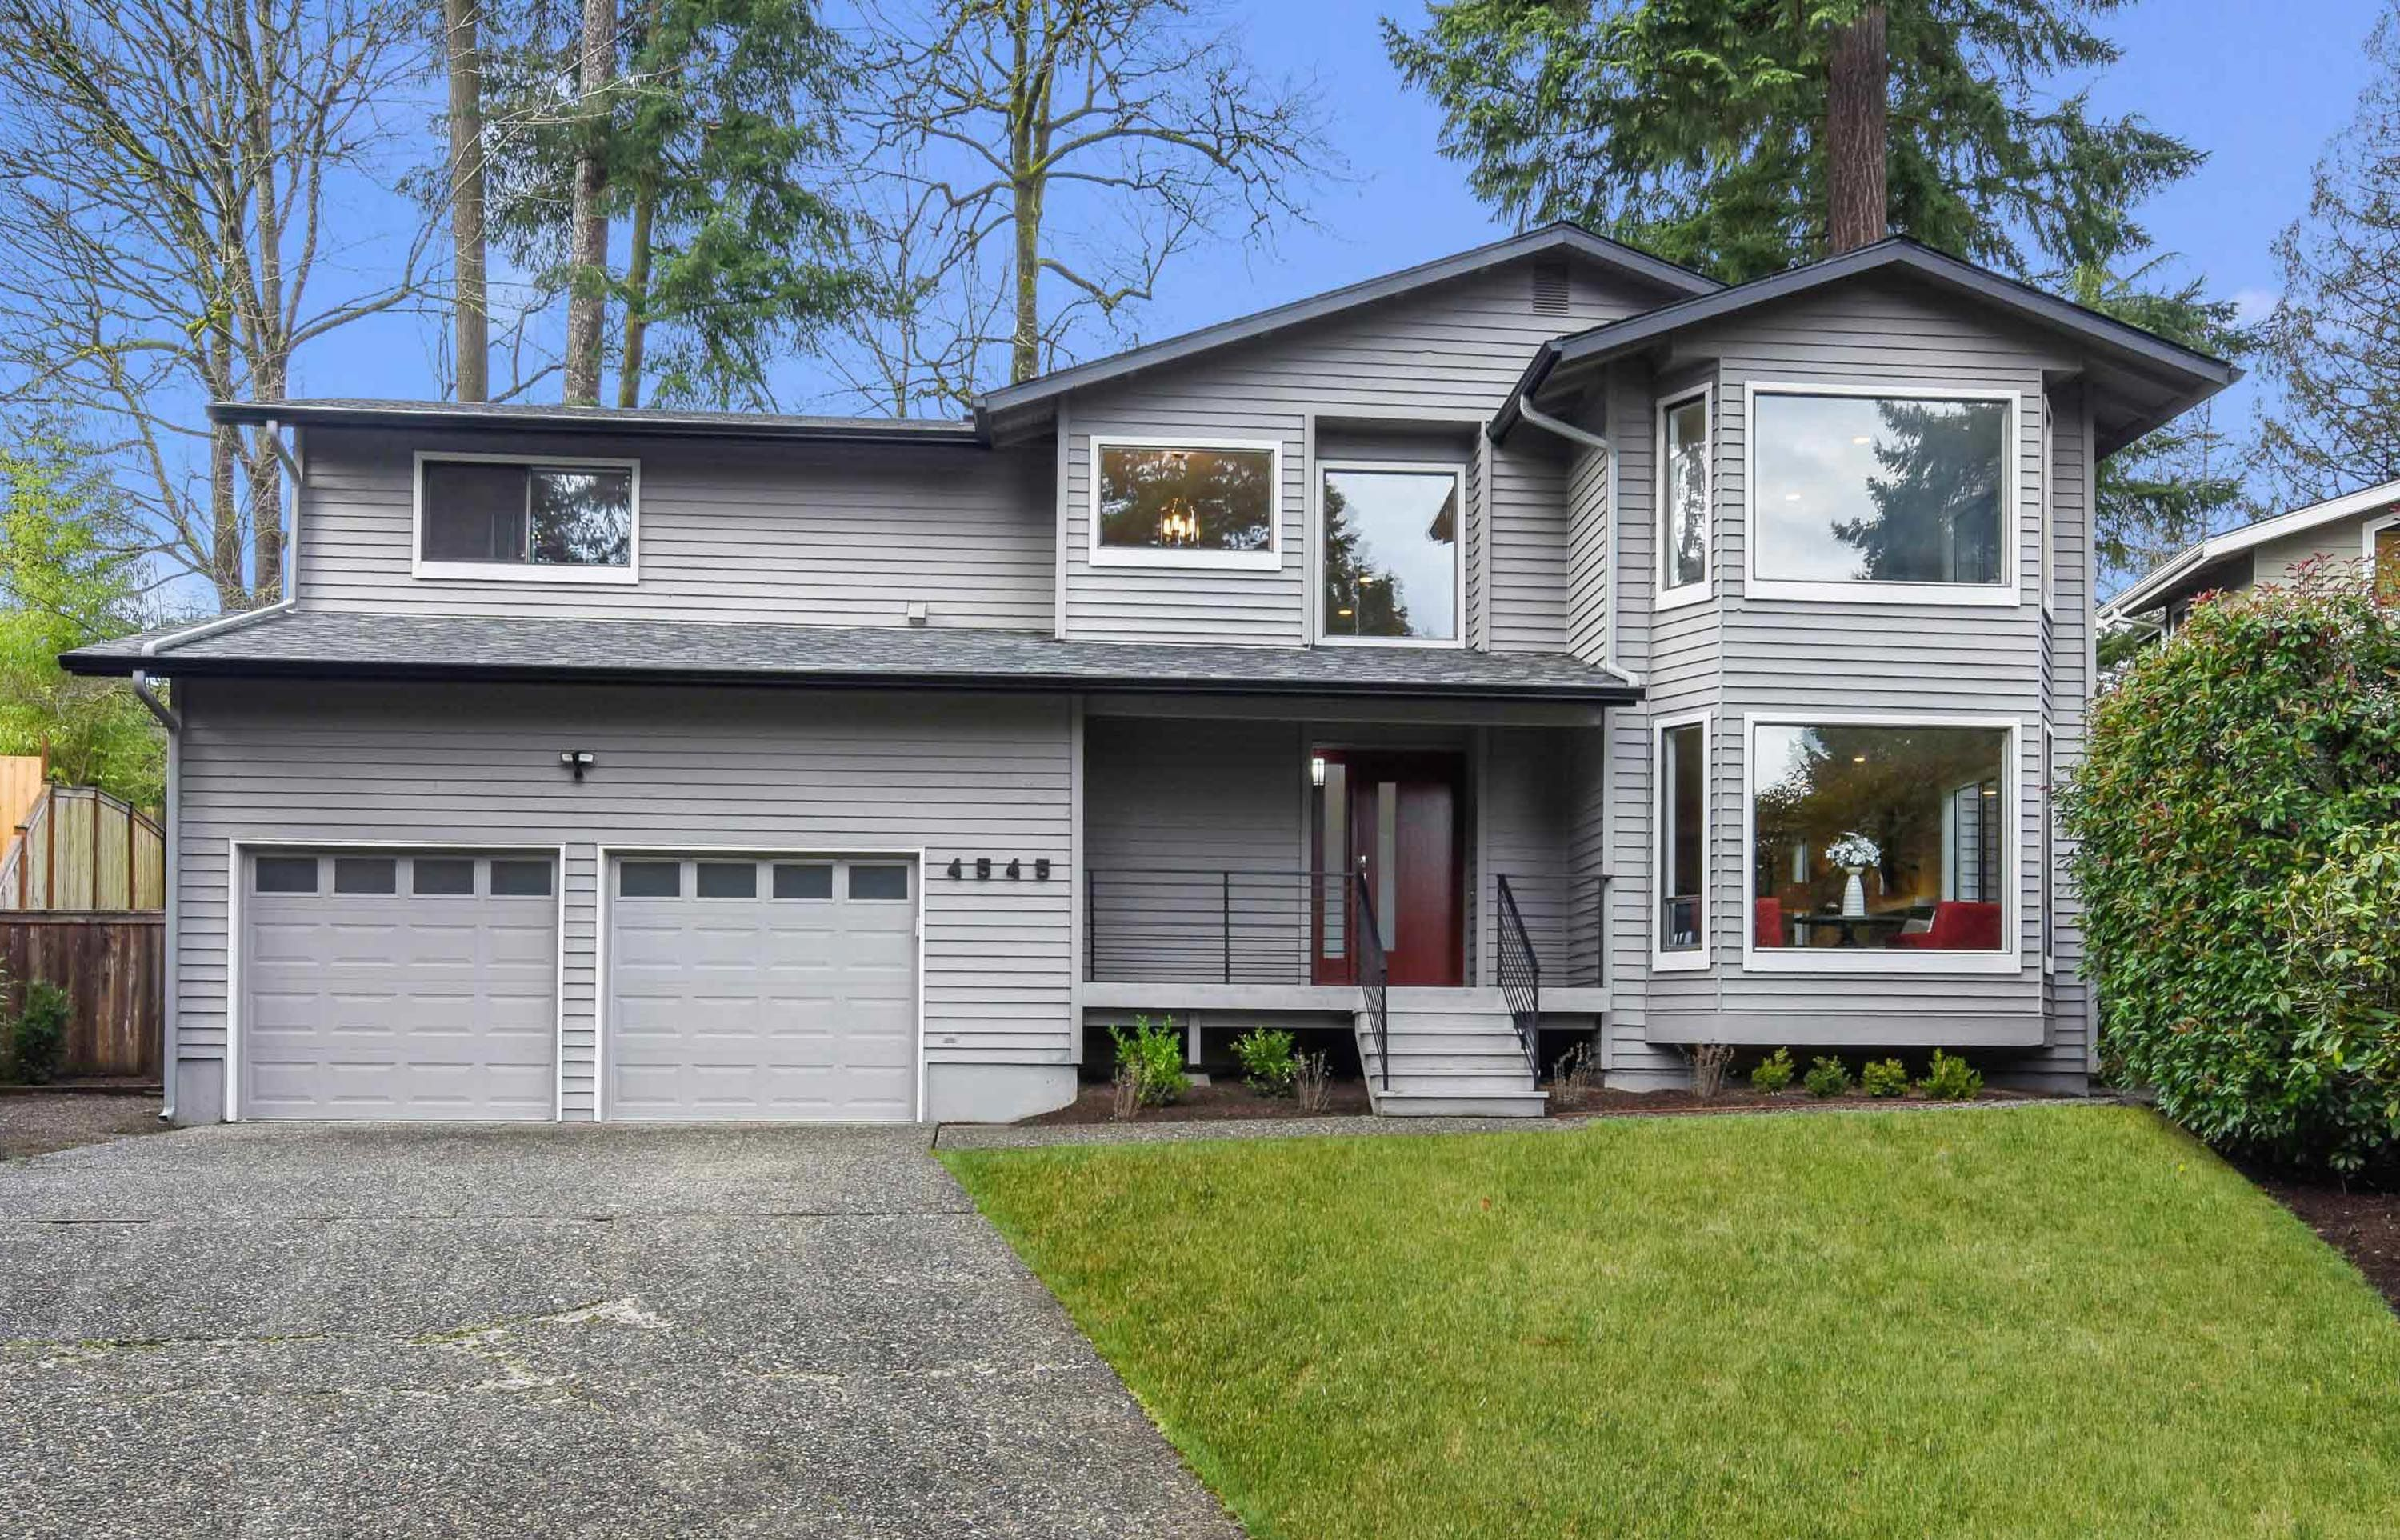 Fully remodeled 4 bedroom 35 bath home in desirable